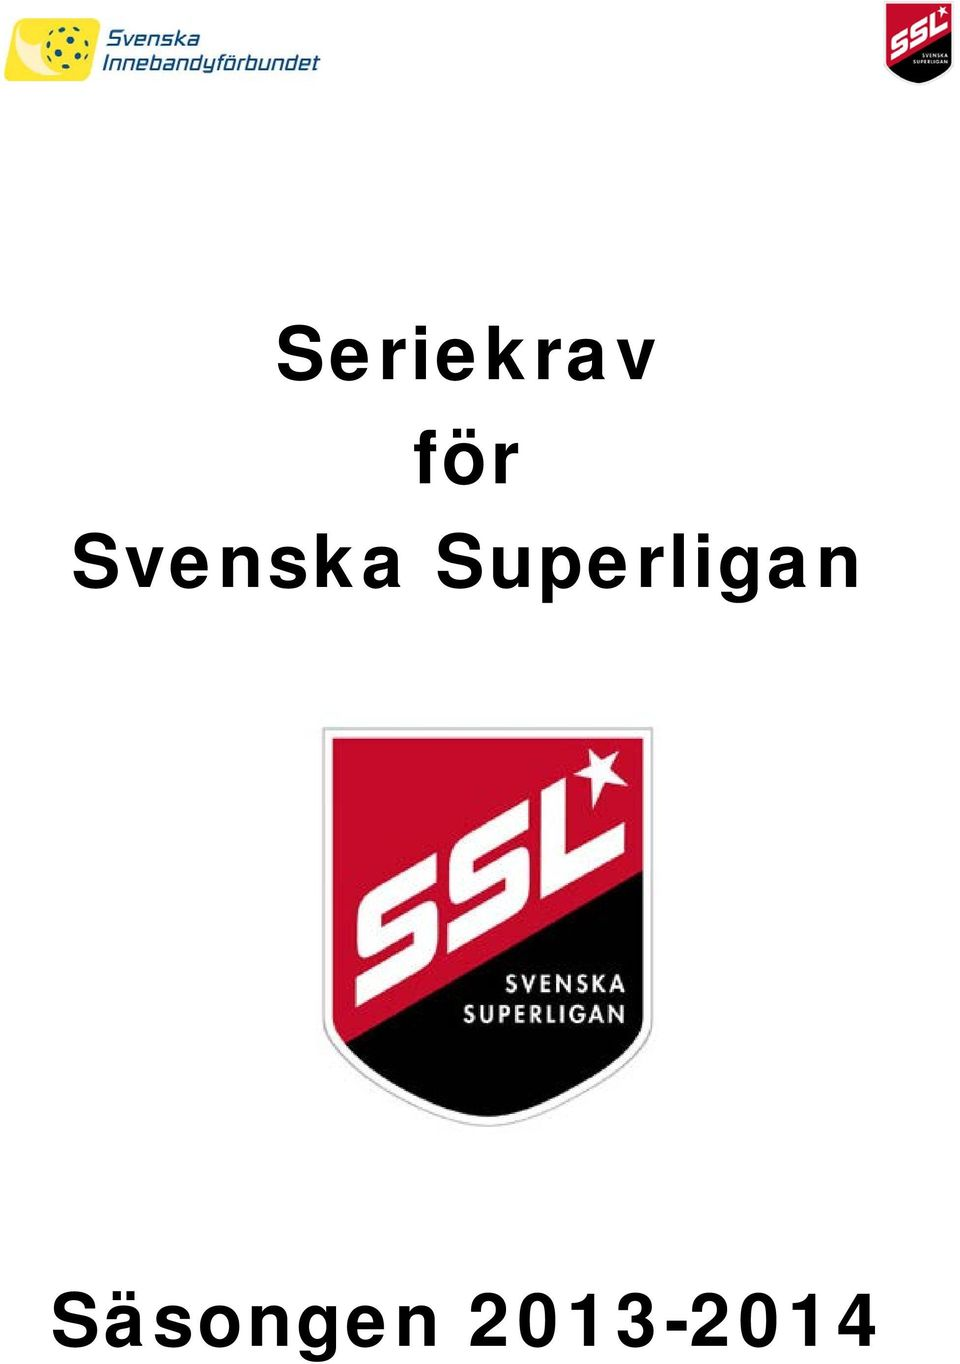 Superligan